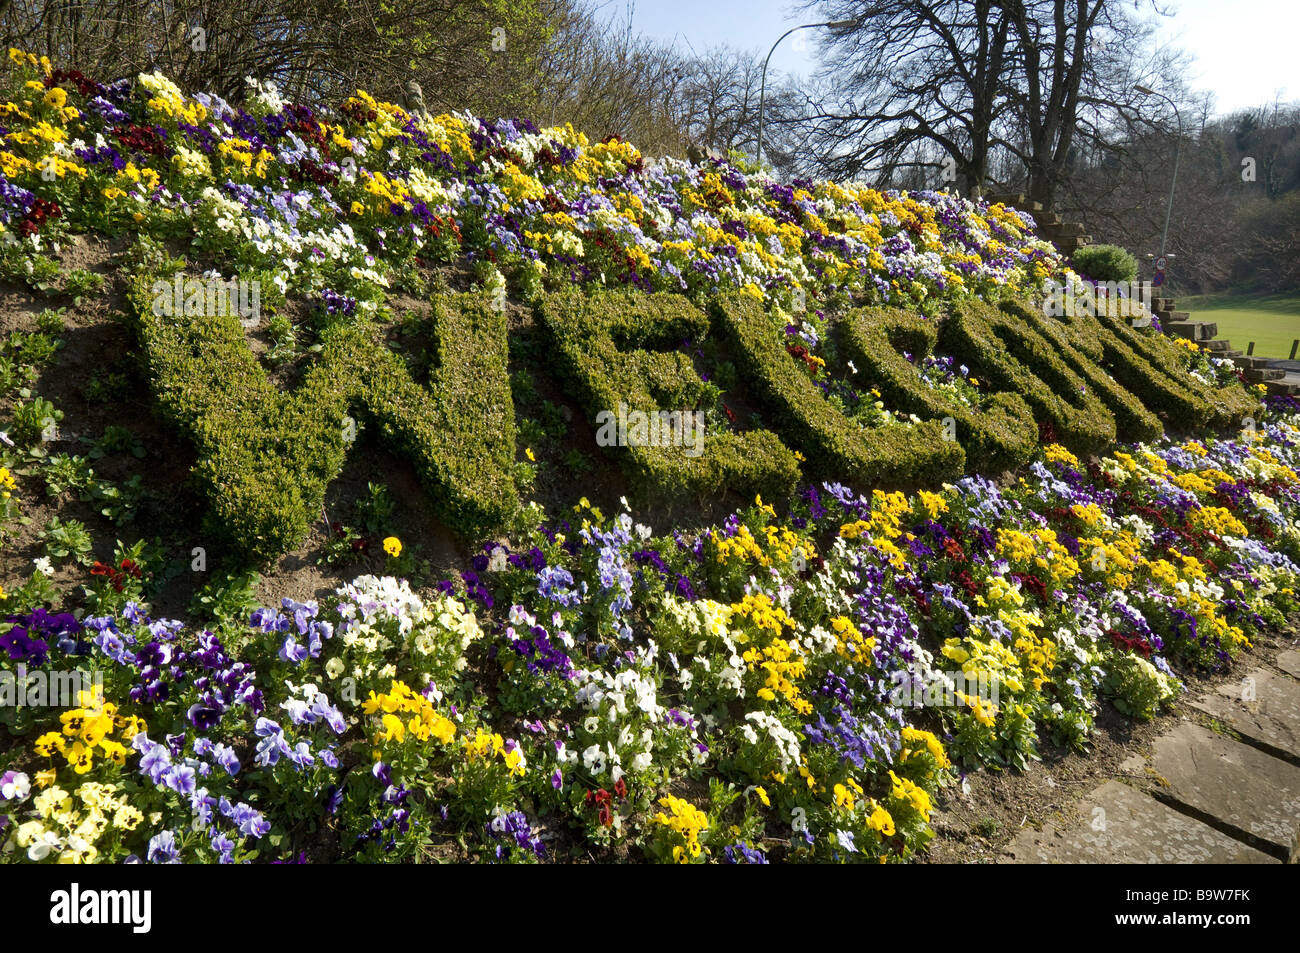 A welcome sign spelt out in plants on a bank of pansies on the approach to Brighton, Sussex. - Stock Image